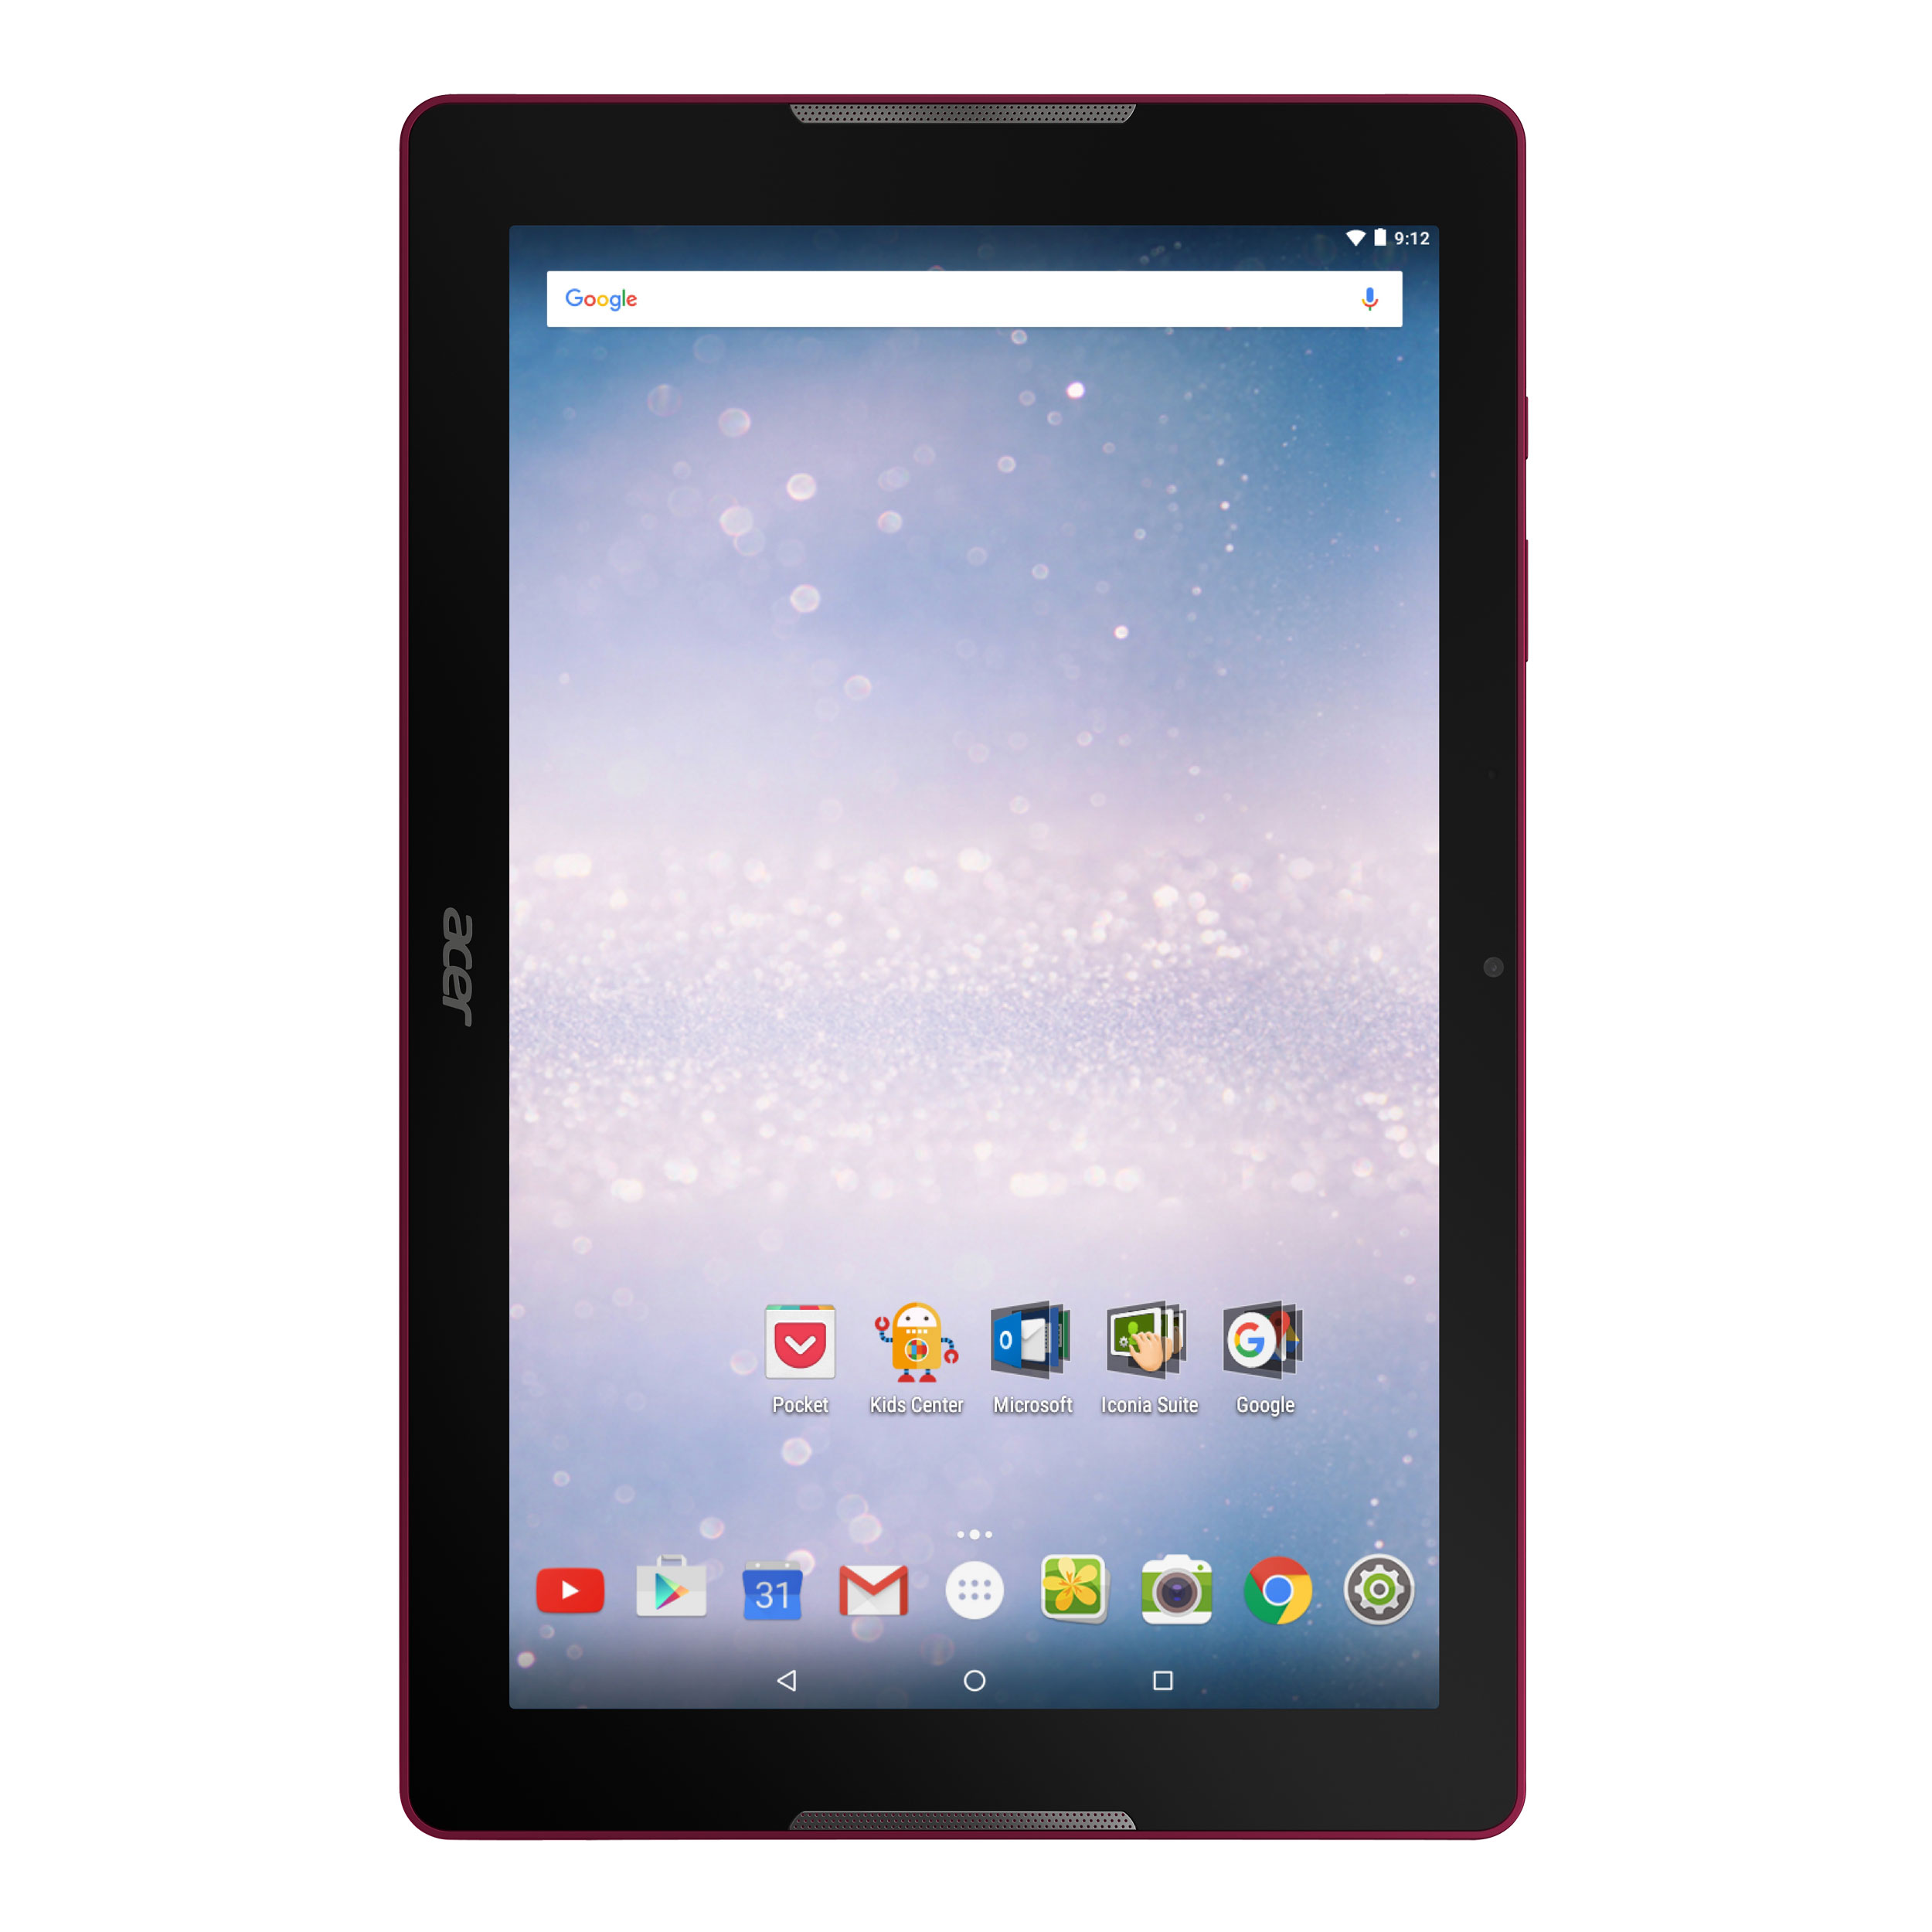 Stockists of Acer Iconia One 10 B3-A30 Quad-Core Processor 1GB Ram 16GB Storage Android 60 101 Hd IPS Tablet